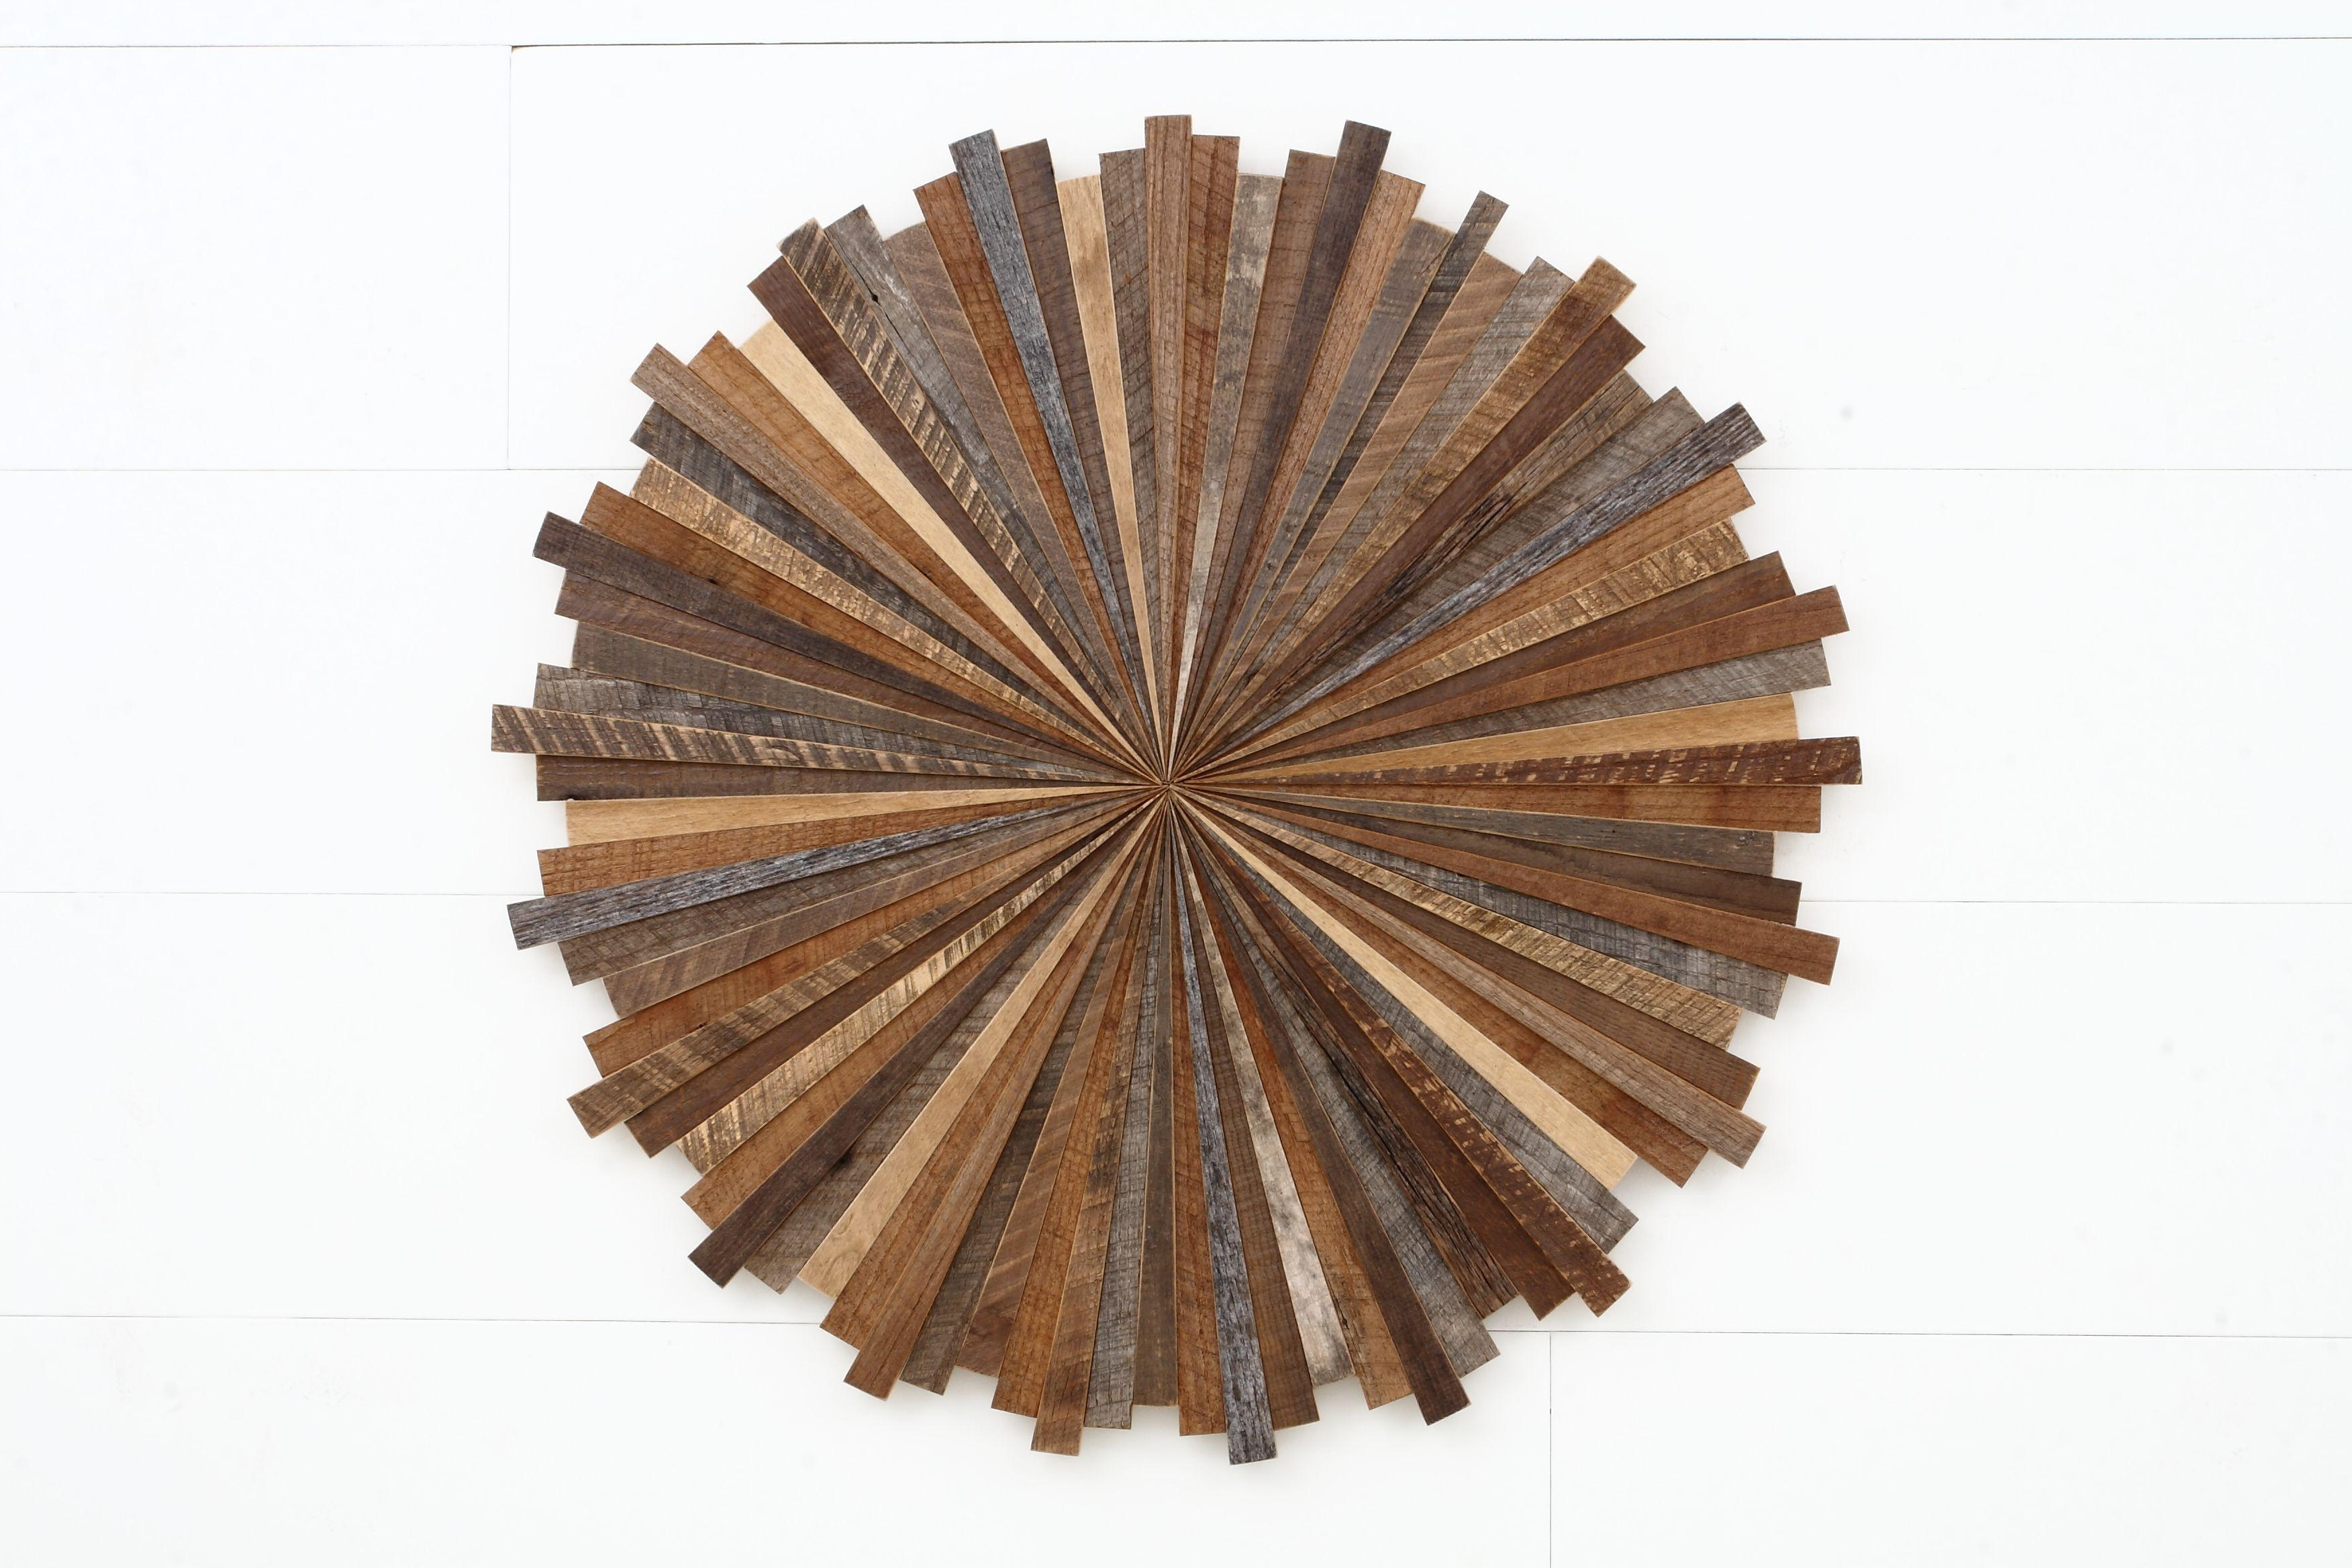 Wood Wall Art | Custommade With Regard To Wood Wall Art (Image 17 of 20)